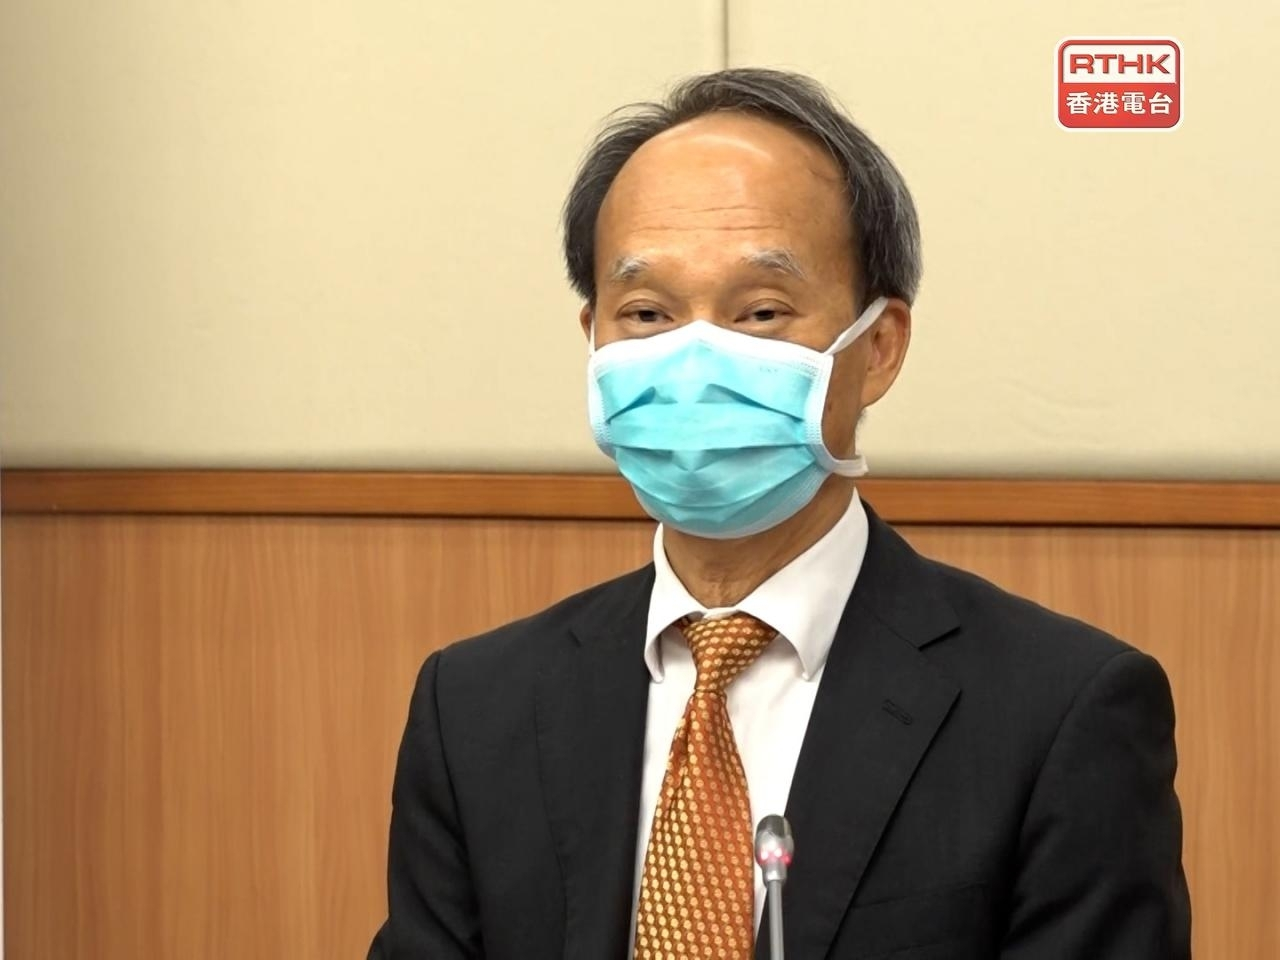 Lau Yu-lung says it's too early to decide whether to offer people a third dose of the Covid vaccine. Photo: RTHK